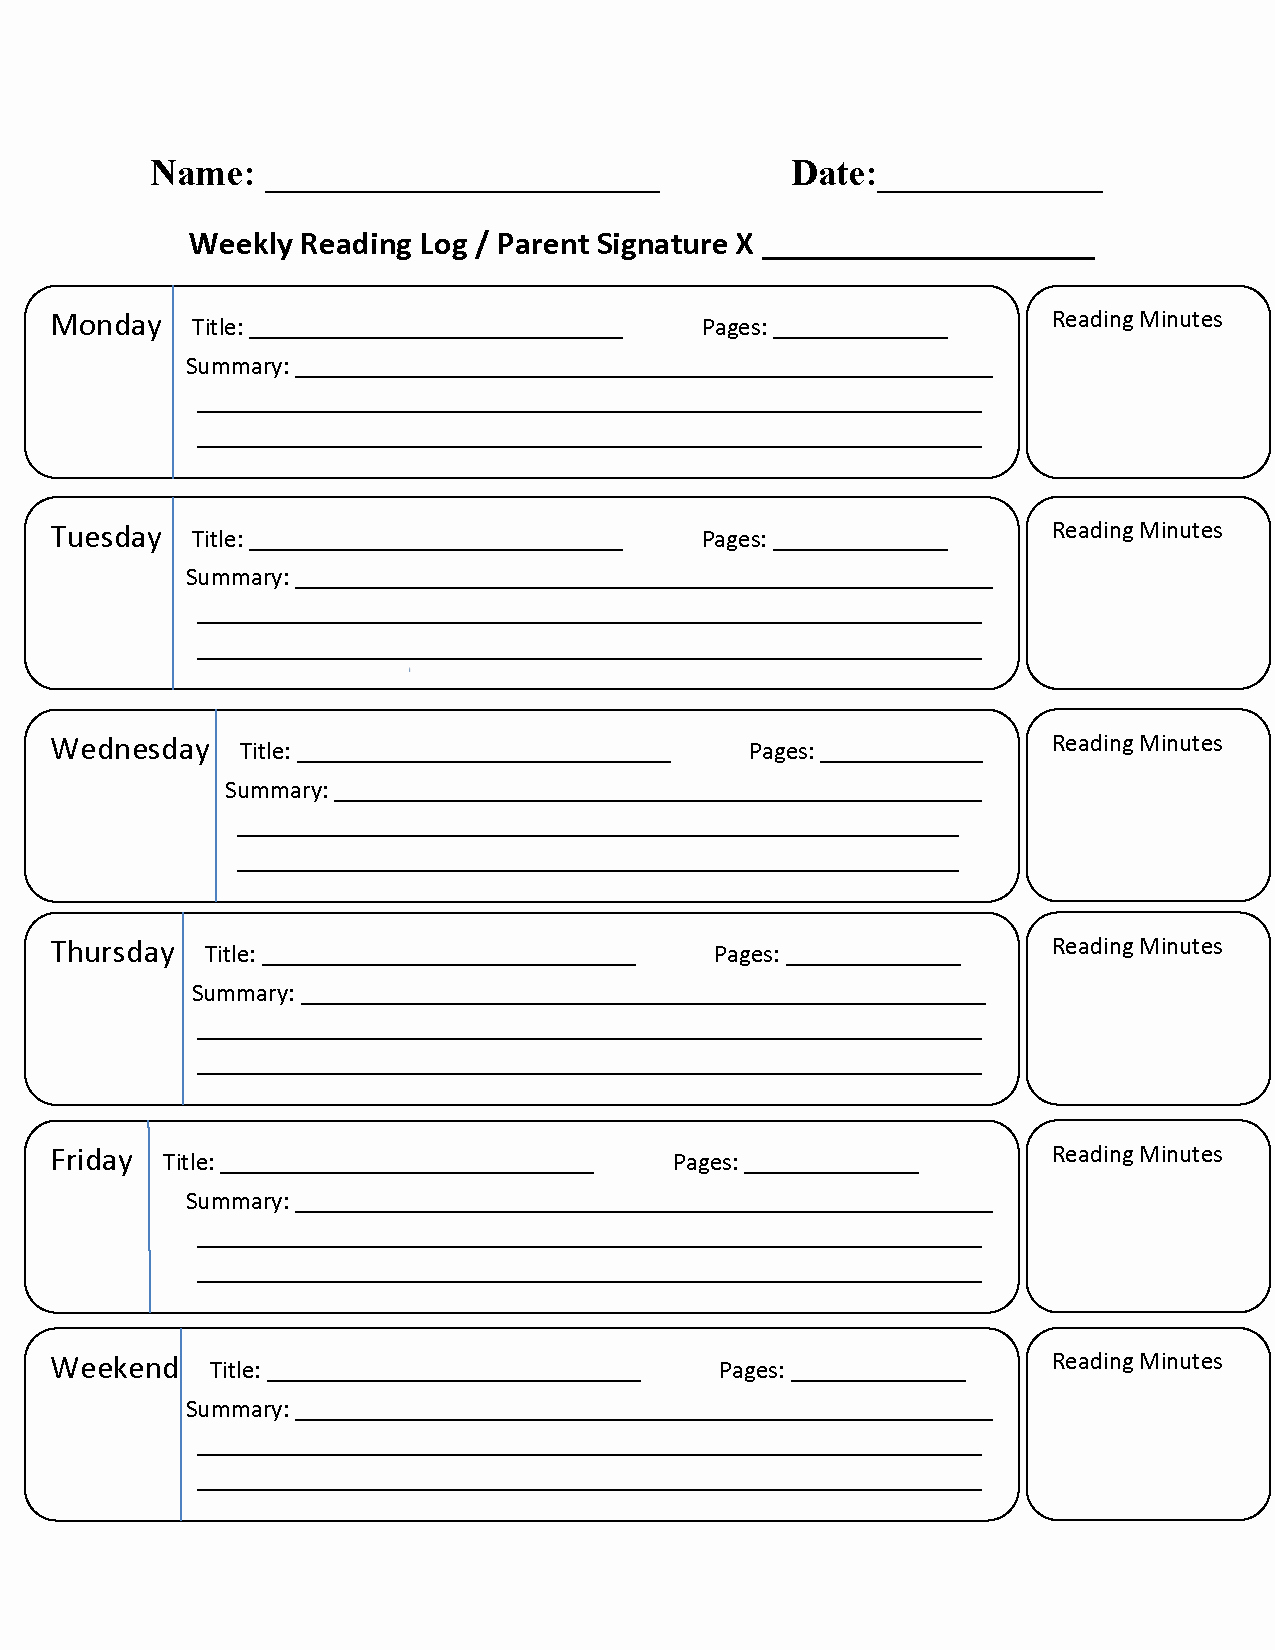 Weekly Reading Log Template New Reading Log Png Transparent Reading Log Png